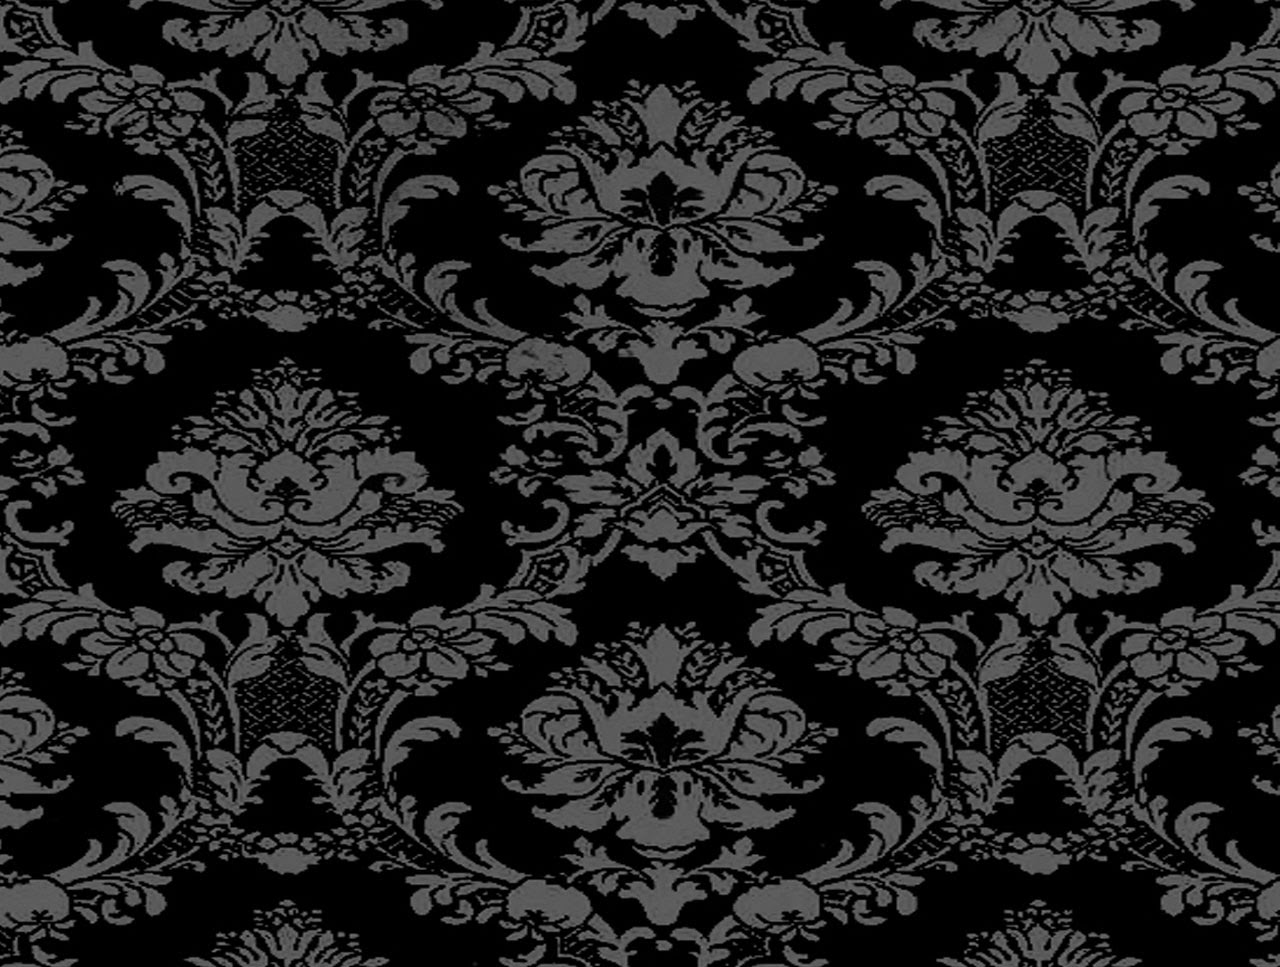 Black Damask Wallpaper ~ WallpaperYork | Brows your wallpaper here | Best quality wallpapers